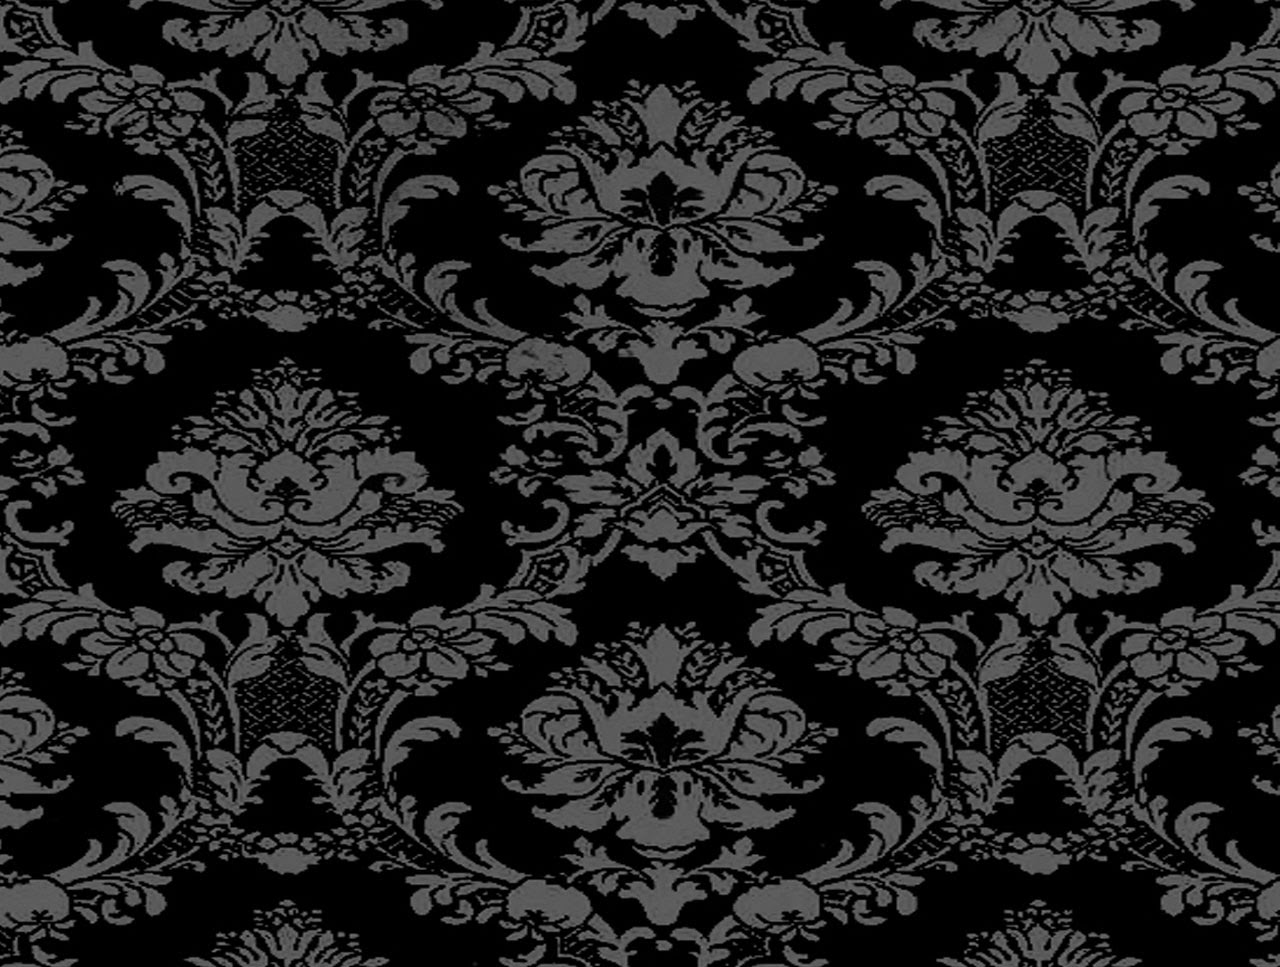 Black Damask Wallpaper ~ WallpaperYork | Brows your wallpaper here | Best quality wallpapers